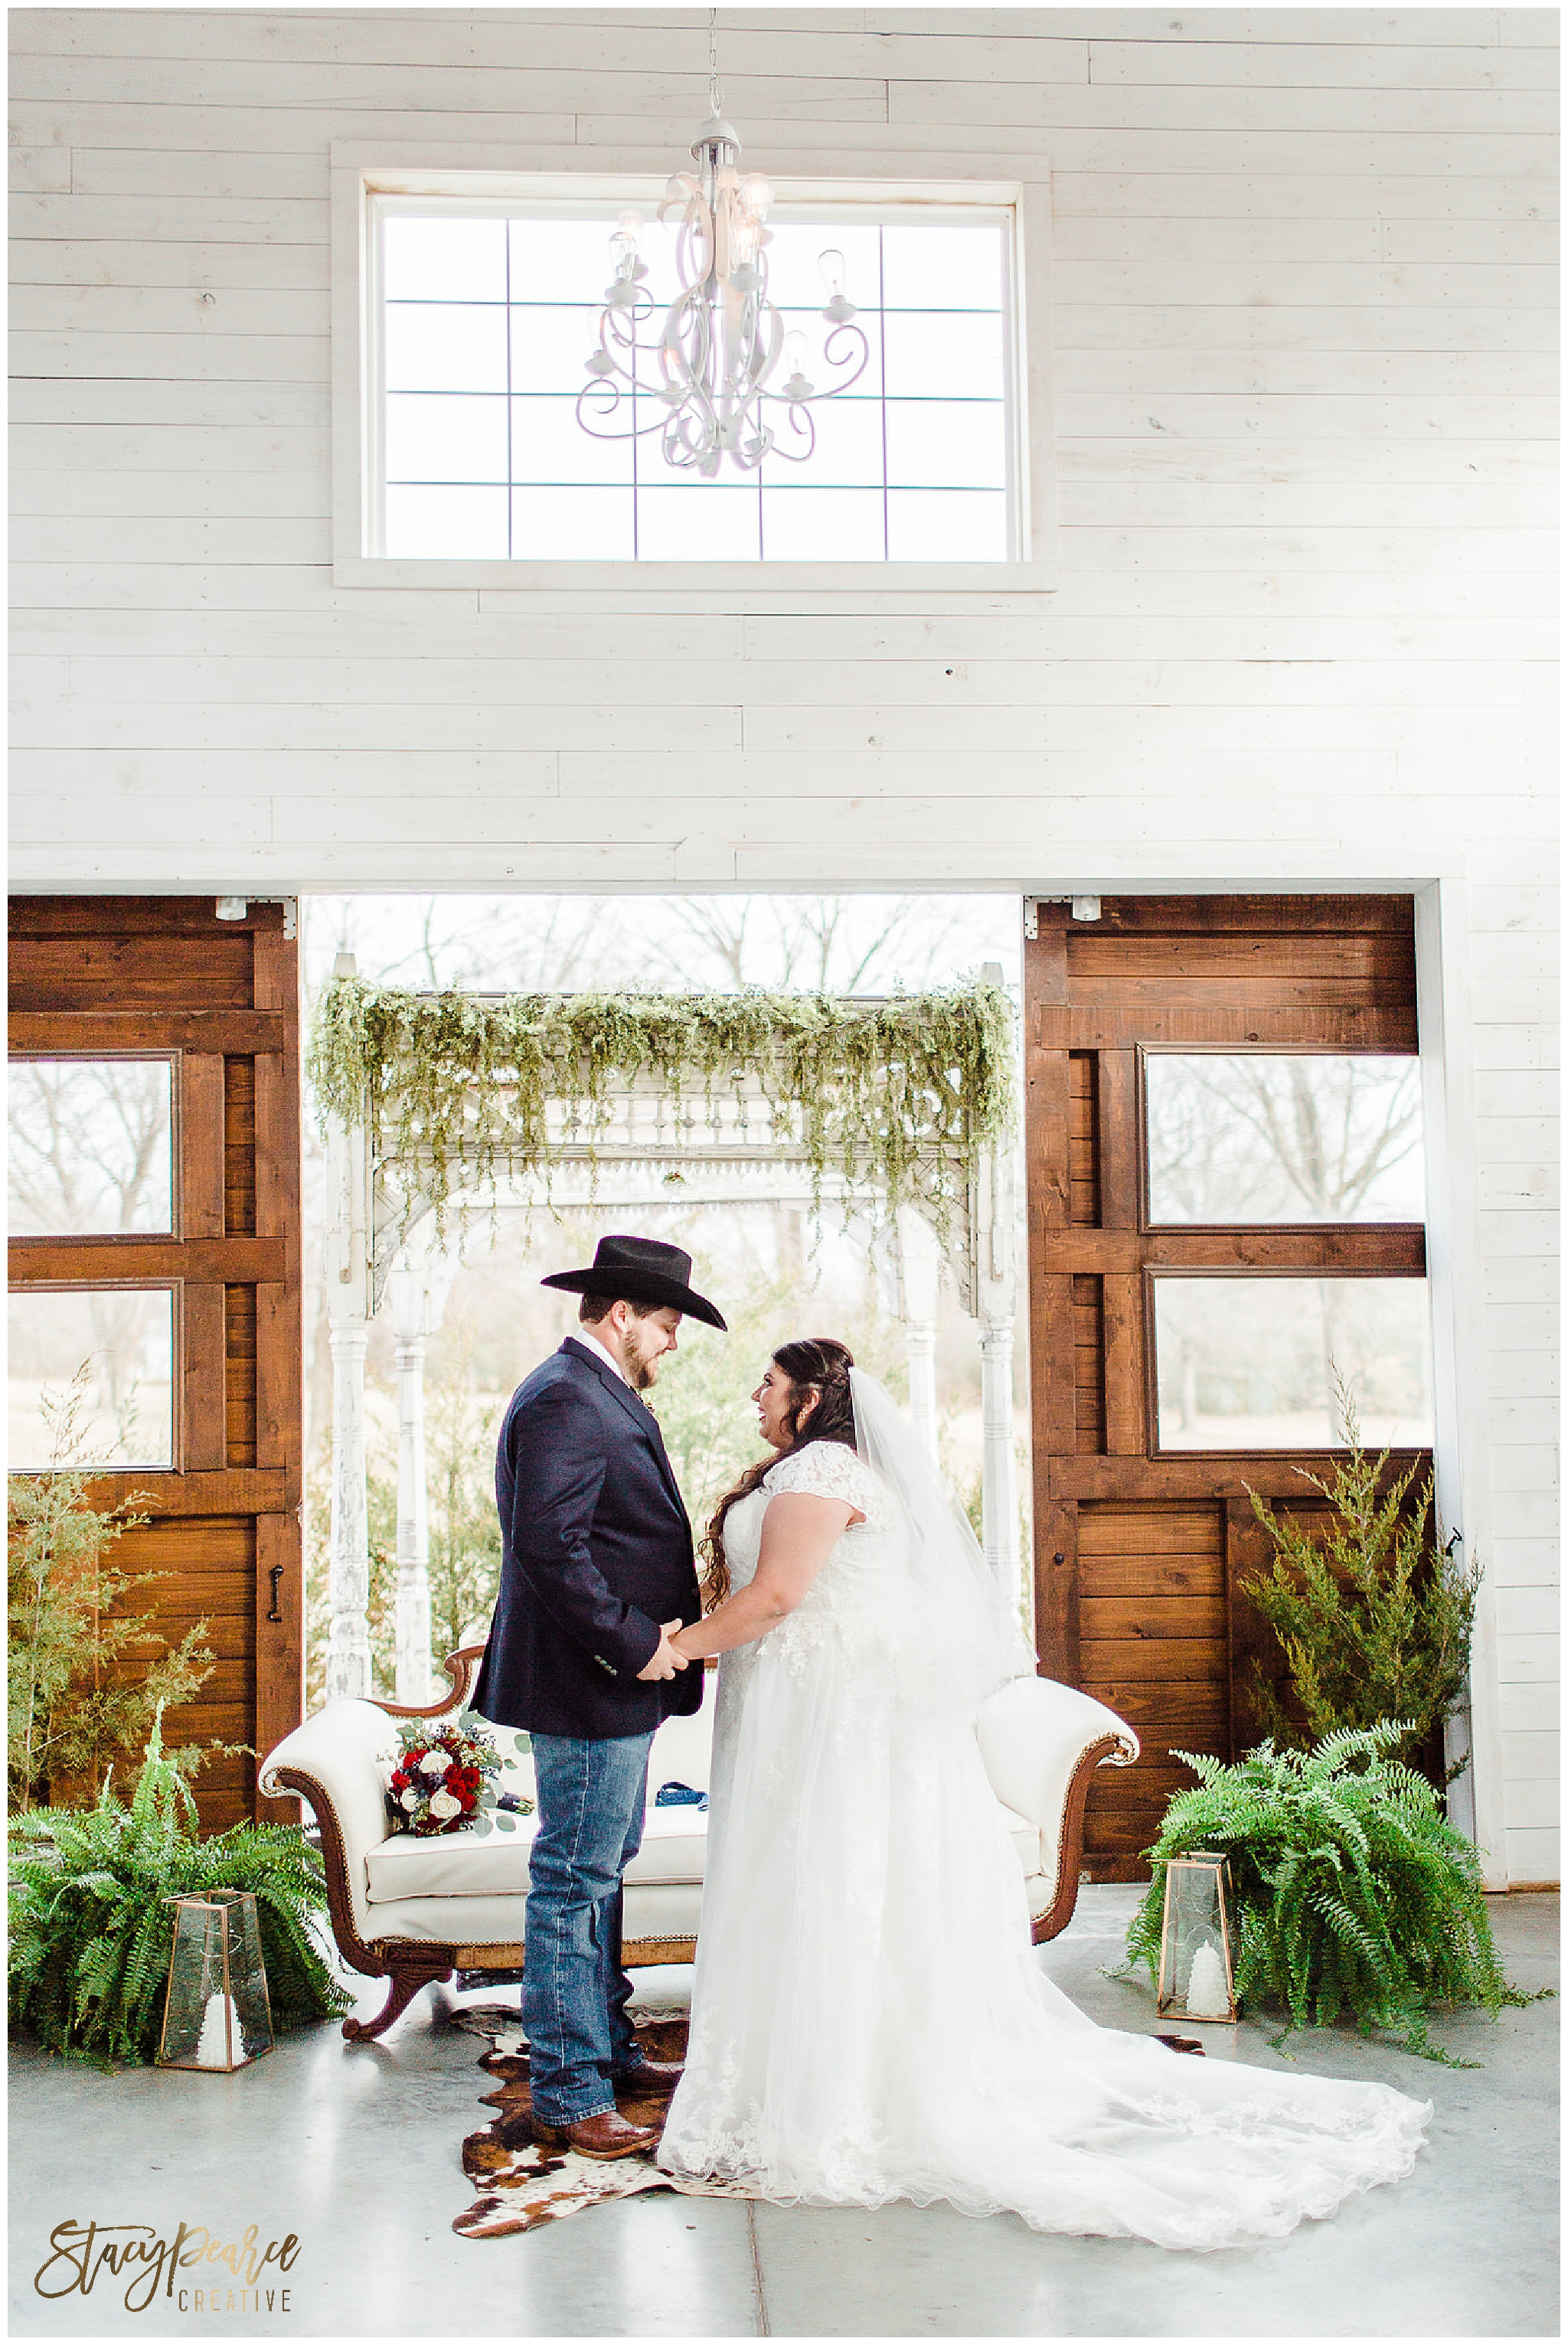 9efeed7566647 Blog | Stacy Pearce | Oklahoma Photographer & Designer